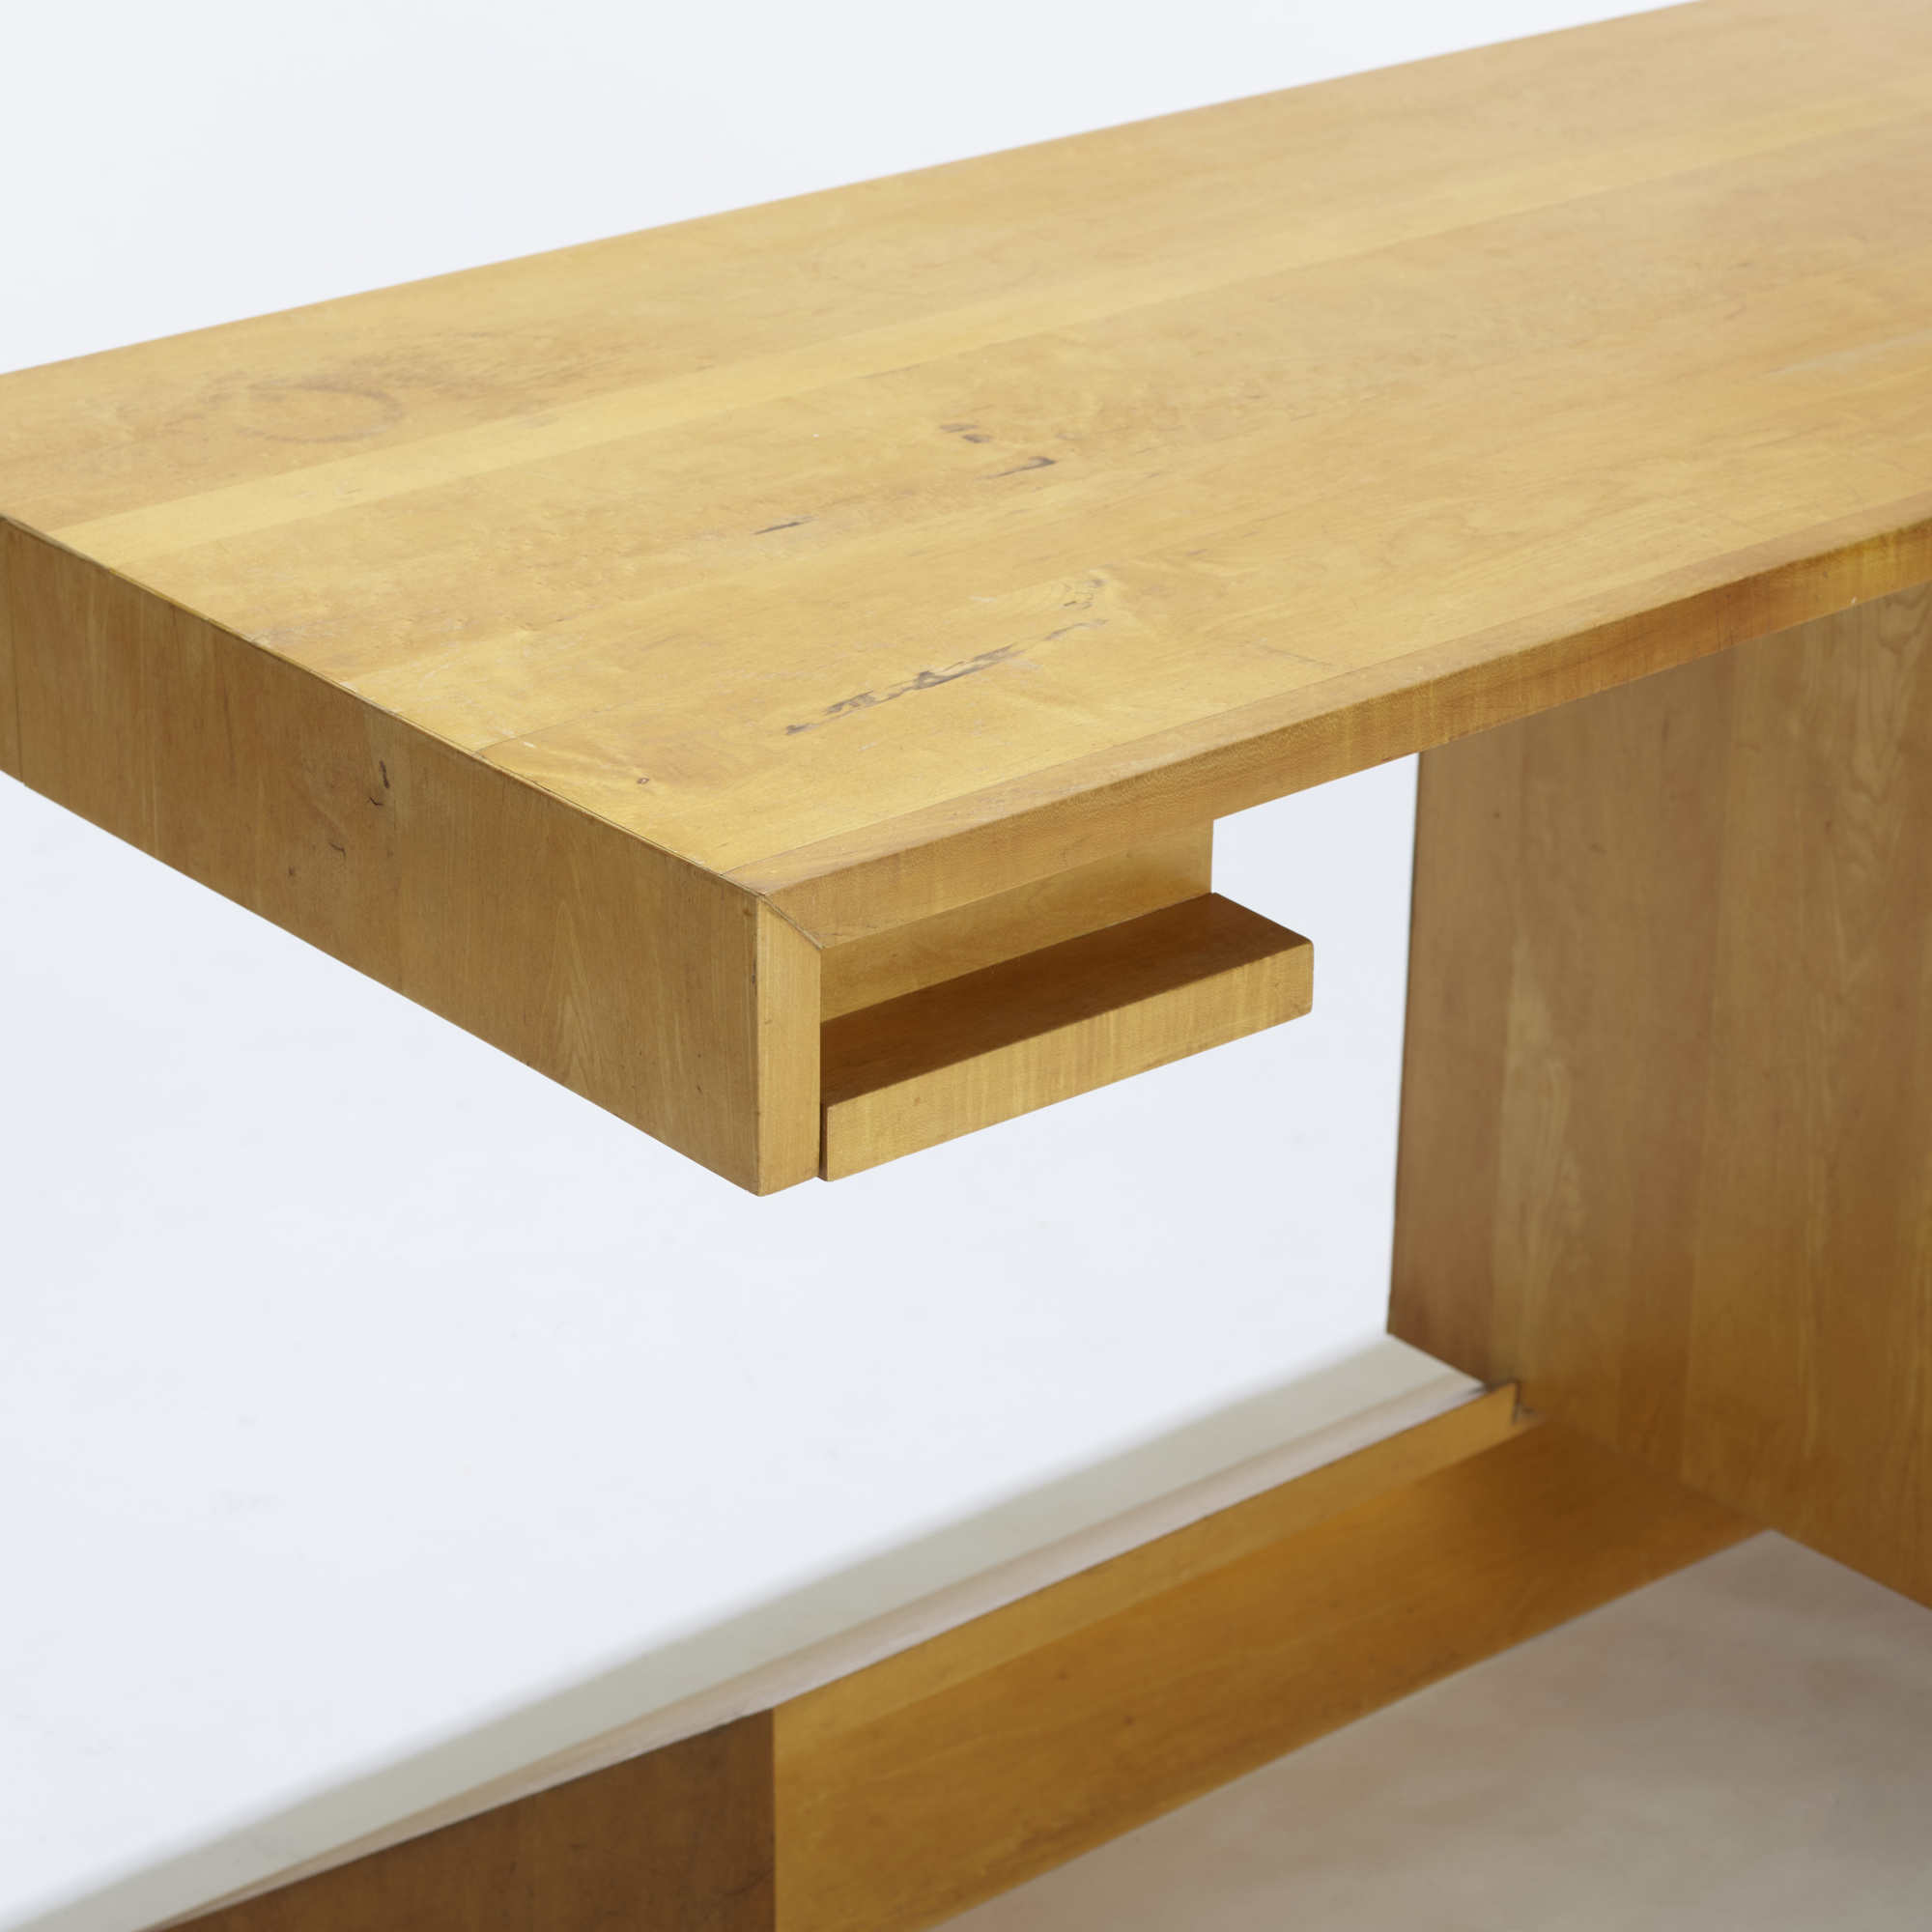 238: Dan Johnson / desk (5 of 5)